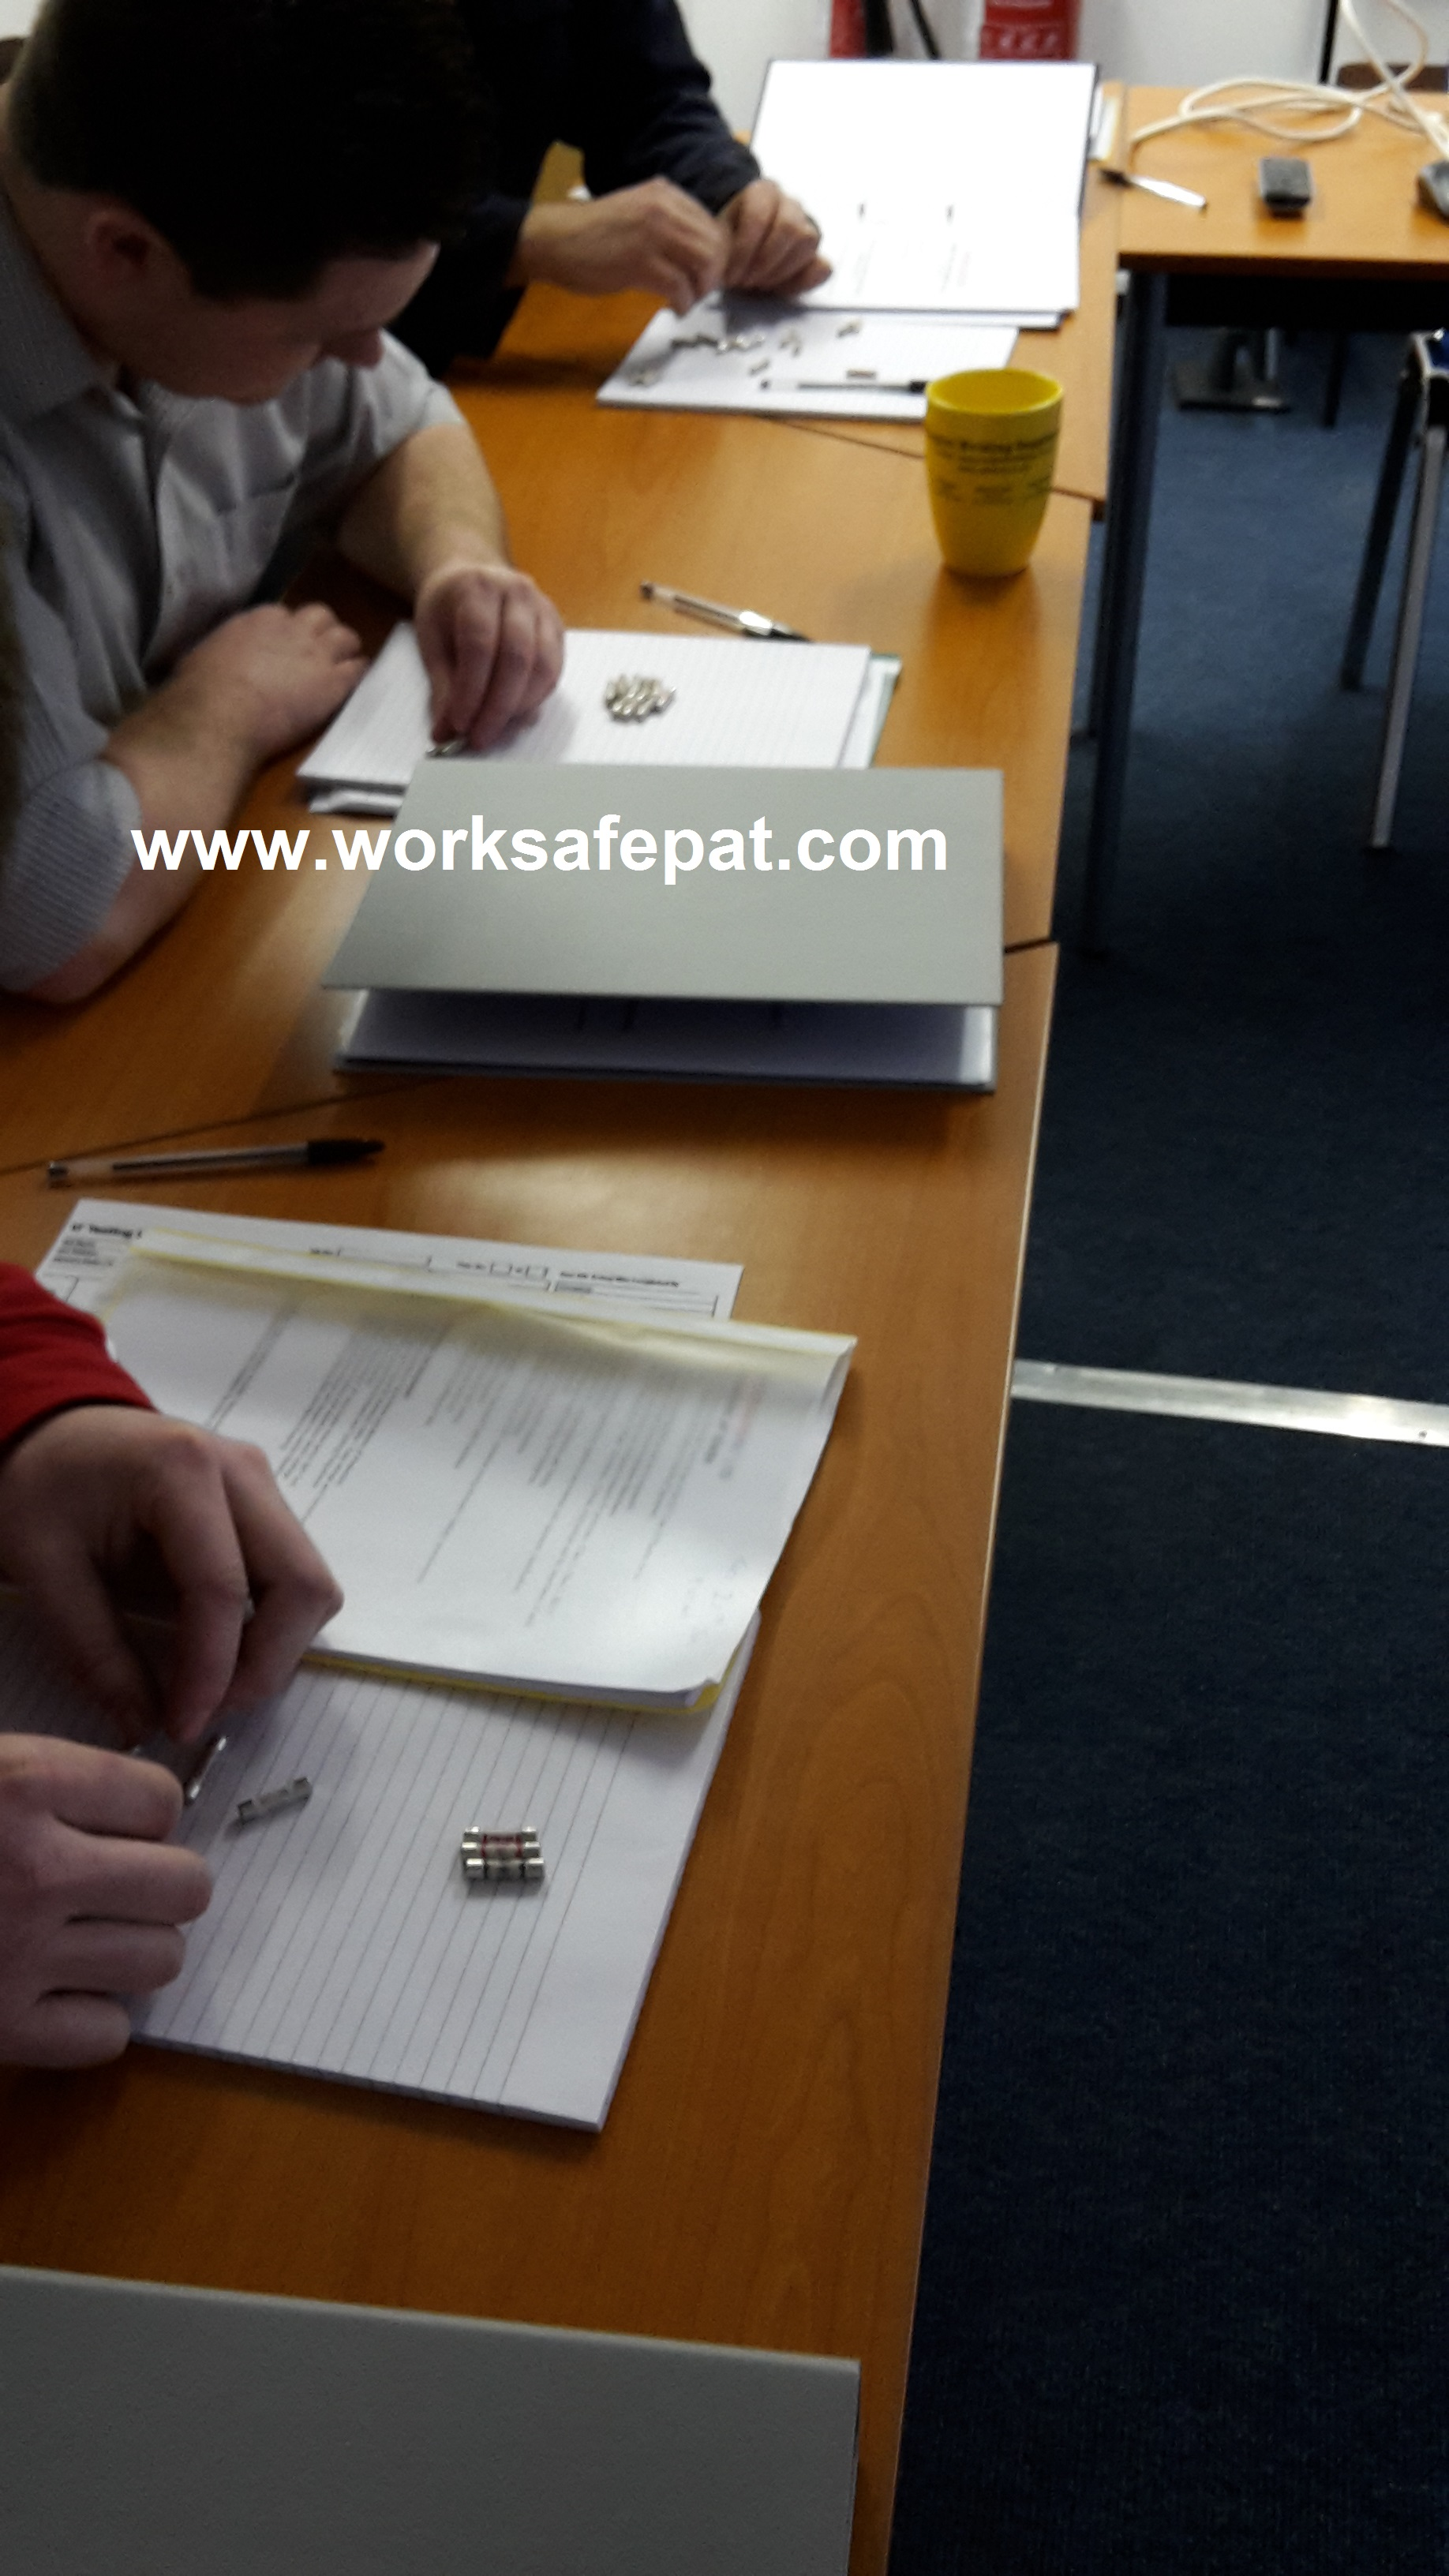 in-house pat testing training by the specialists worksafepat